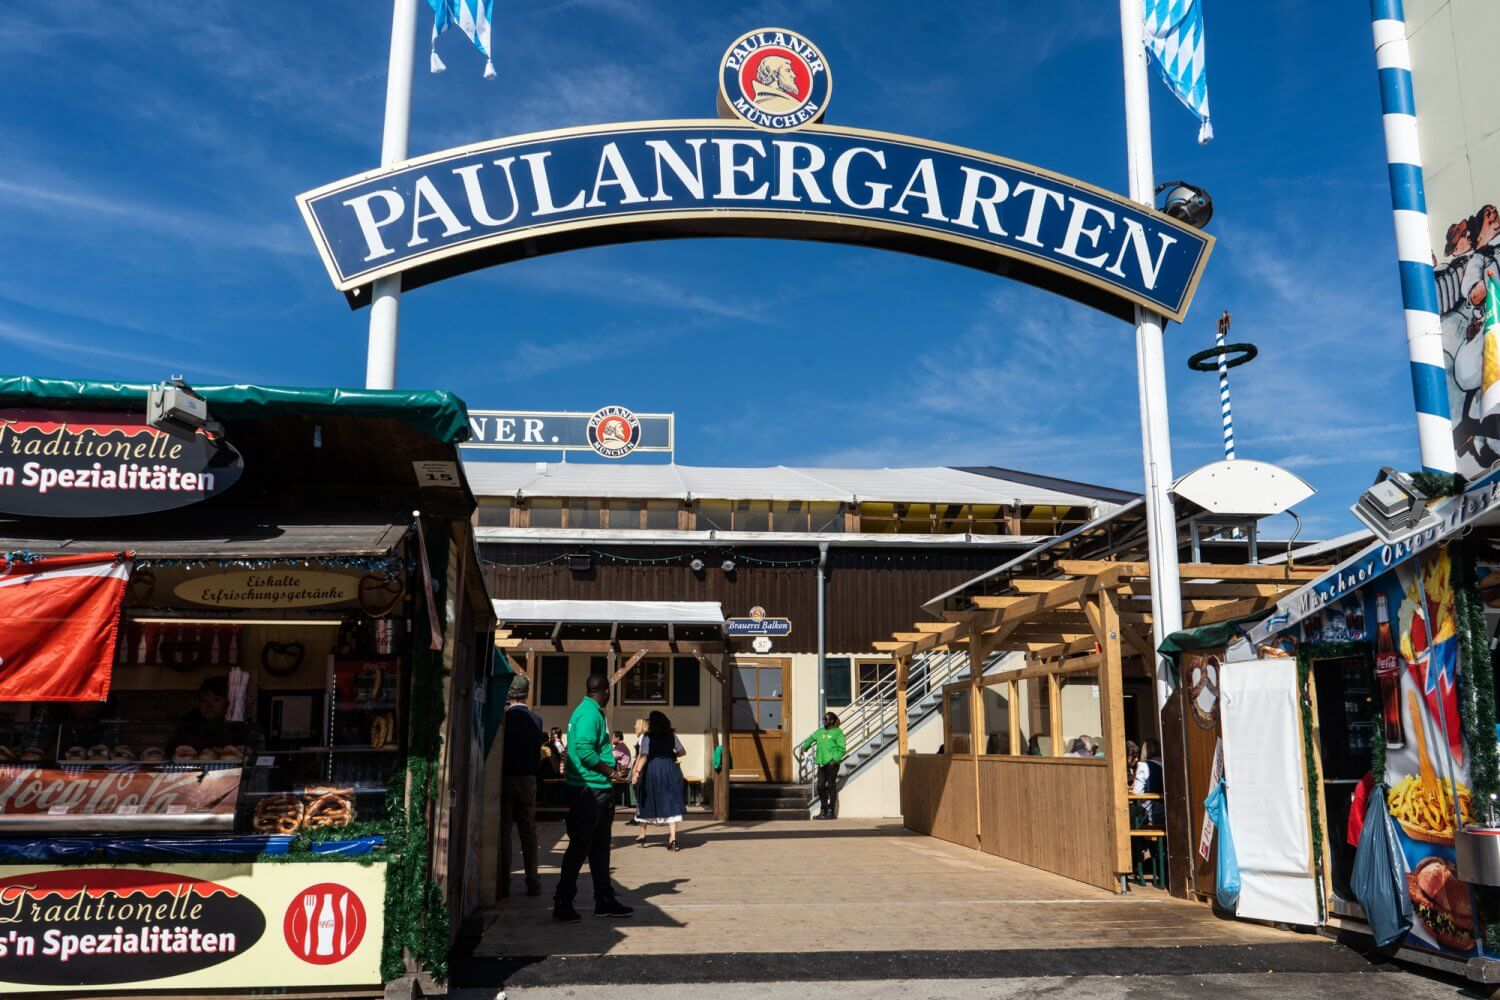 Paulaner beer garden at Oktoberfest in Munich, Germany